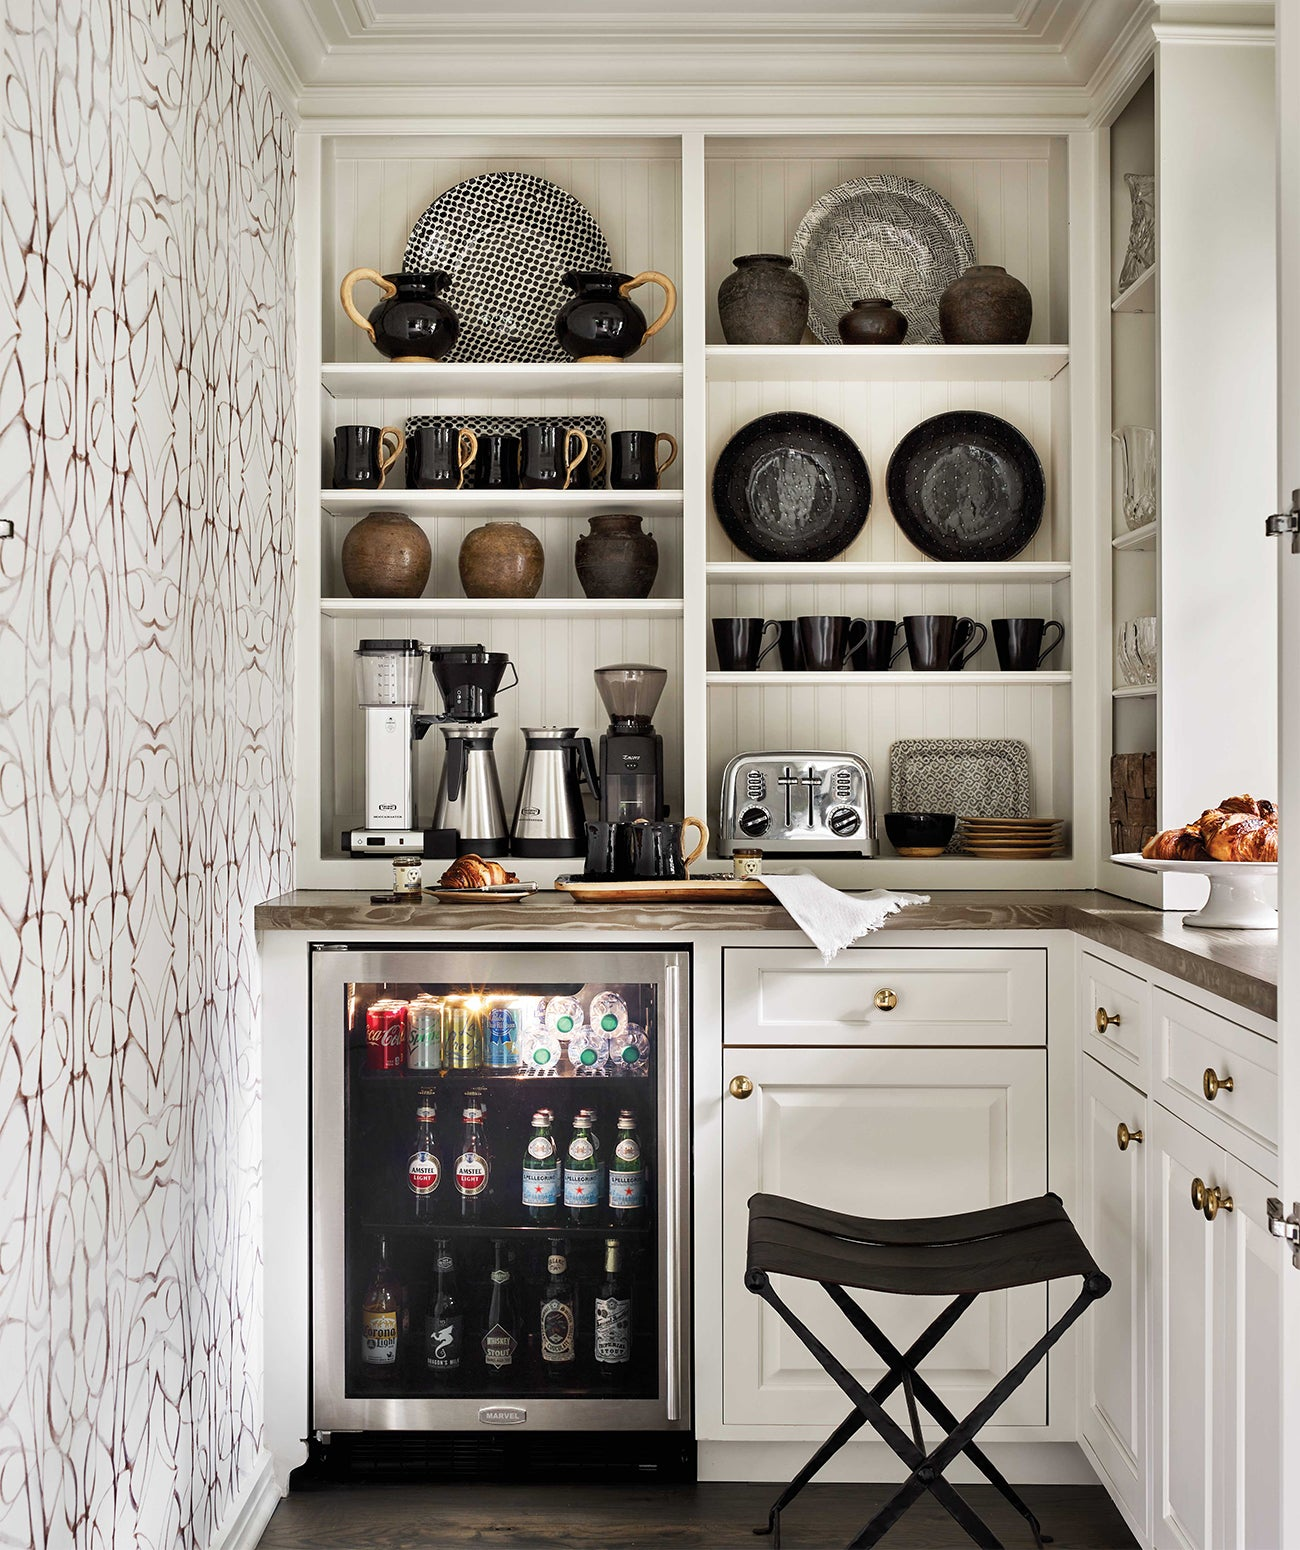 A pantry and bar area with white and black wallpaper/Photography: Emily Followill/This chic pantry-meets-bar area features abstract-patterned wallpaper by Lindsay Cowles and was designed by Andrea Henzlik Design.